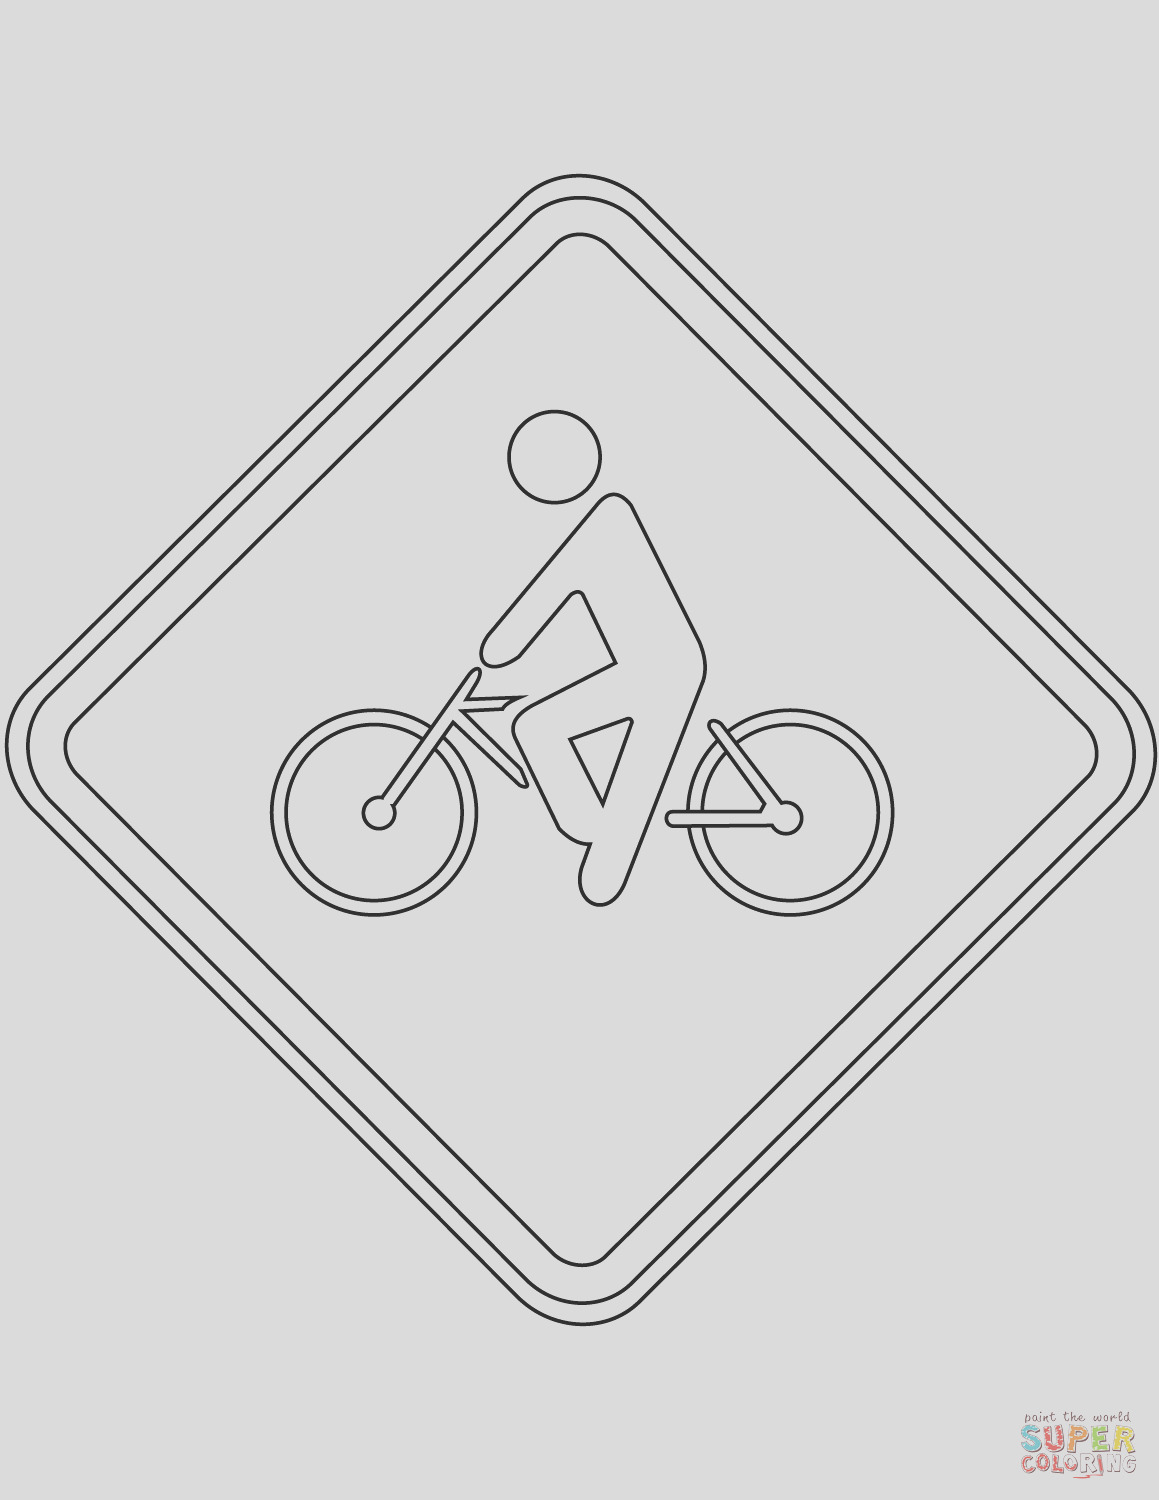 cyclist traffic sign in brazil